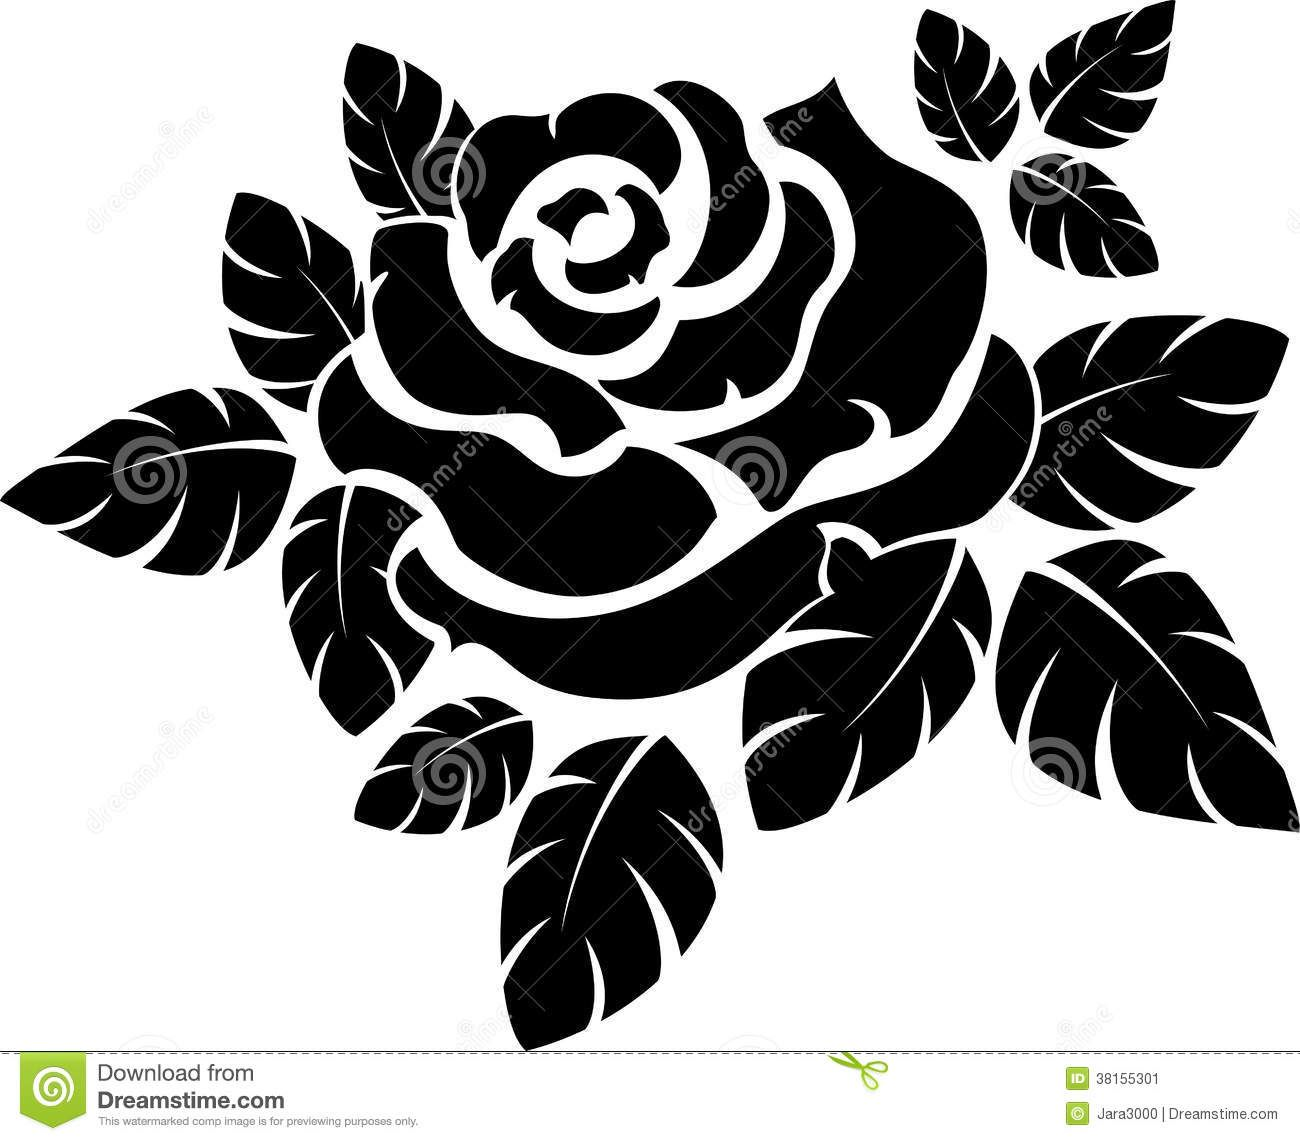 single flower vector - Google Search | Трафареты и узоры | Pinterest ...